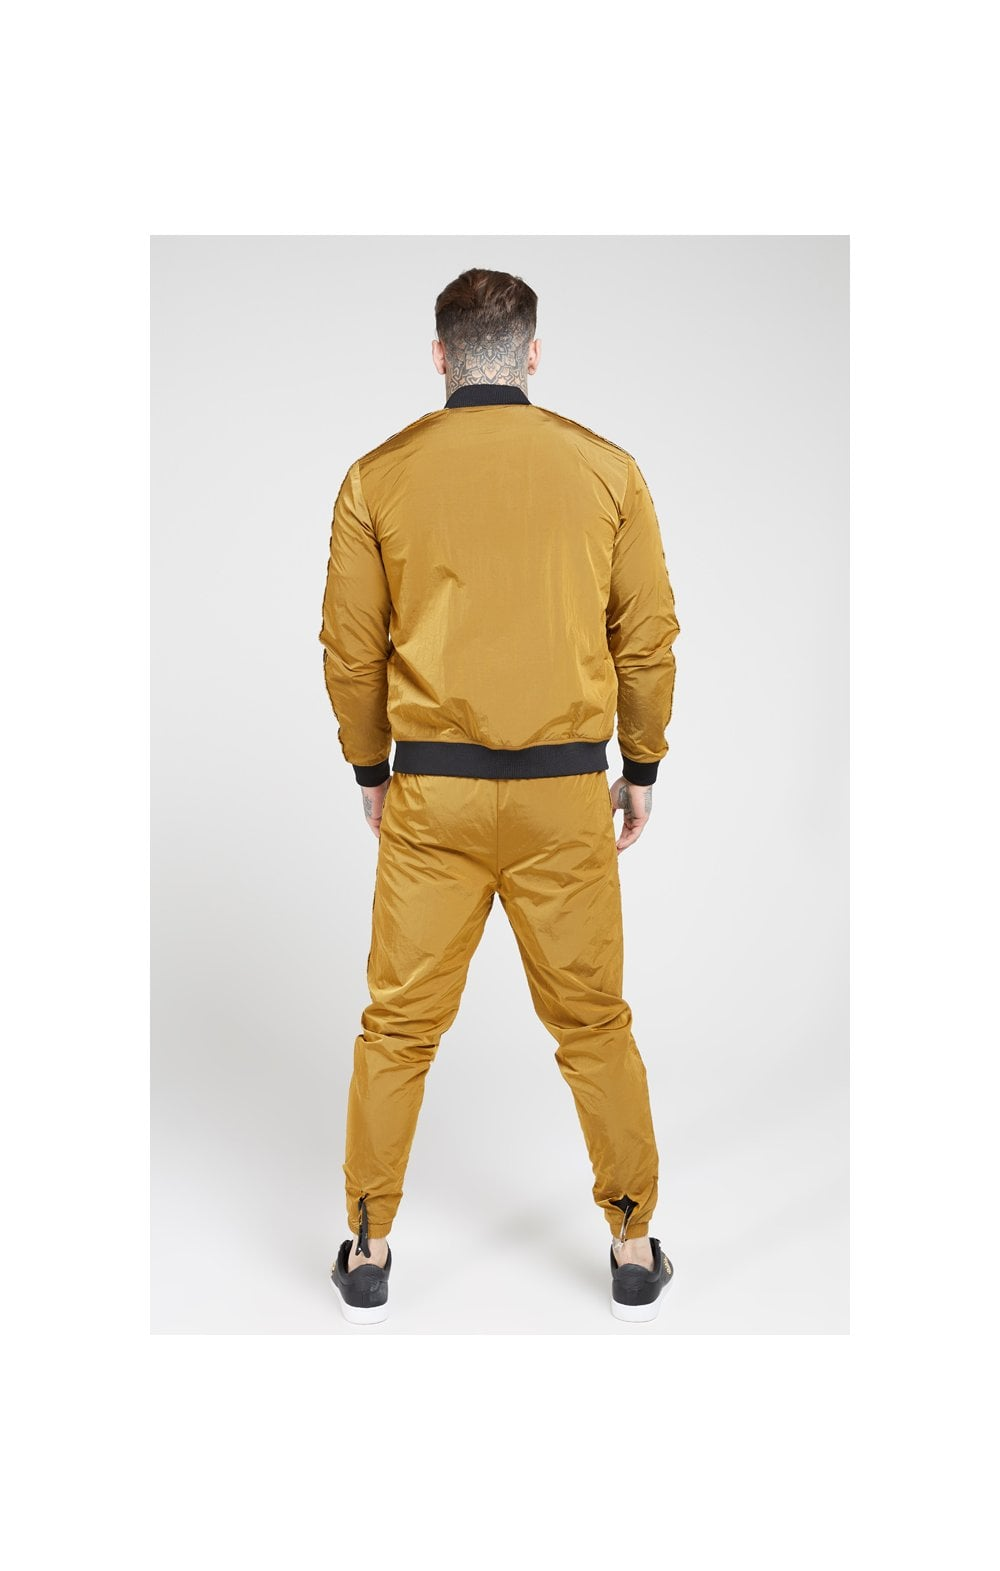 Load image into Gallery viewer, SikSilk Crushed Nylon Taped Joggers – Golden Mustard (5)